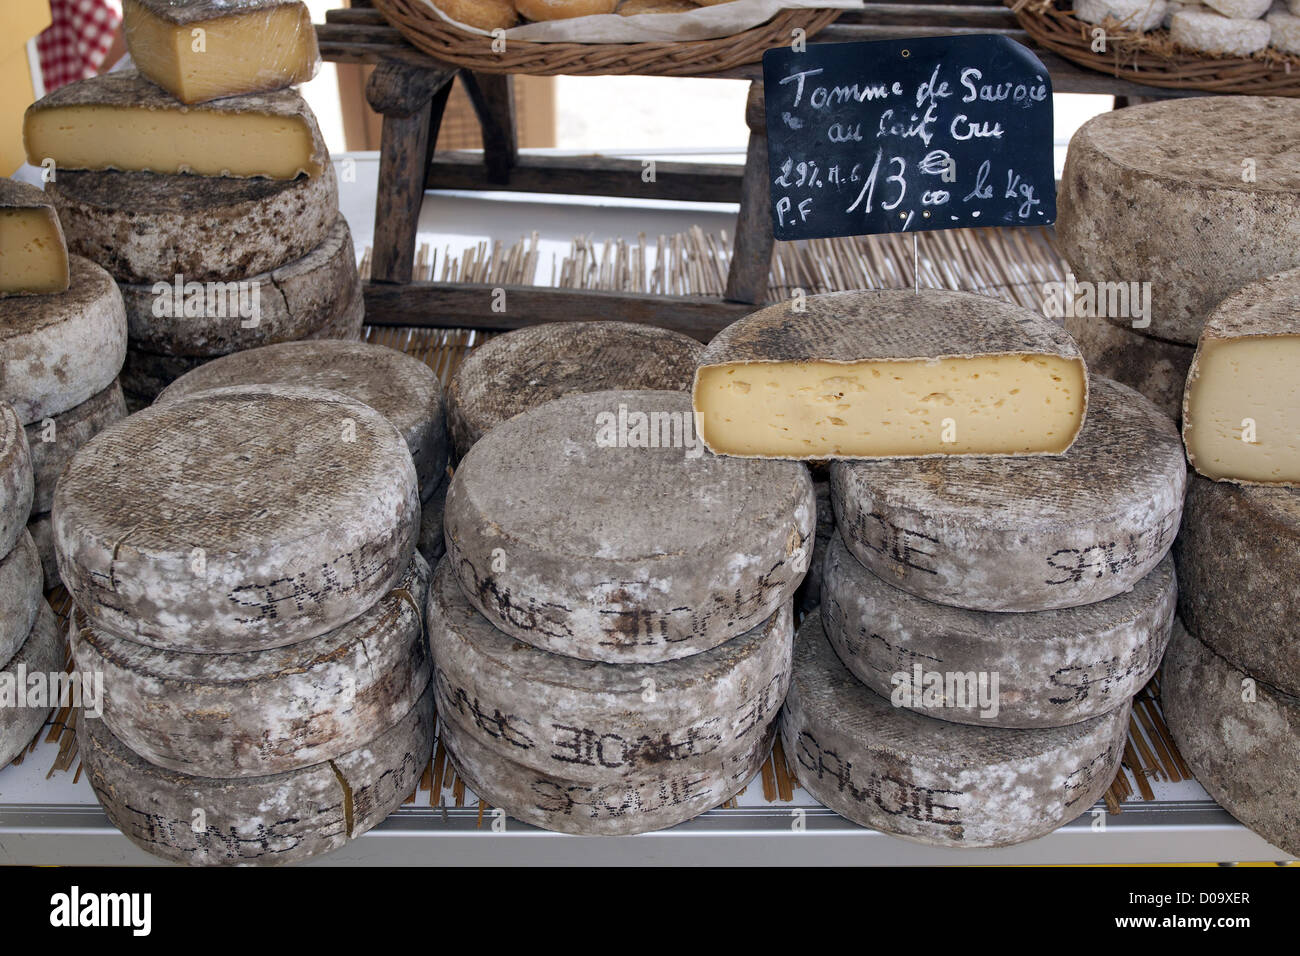 TOMMES DE SAVOIE CHEESES ON SALE ON A CHEESE-MAKER'S STALL IN THE MARKET OF ALLEVARD ISERE RHONE-ALPES FRANCE Stock Photo